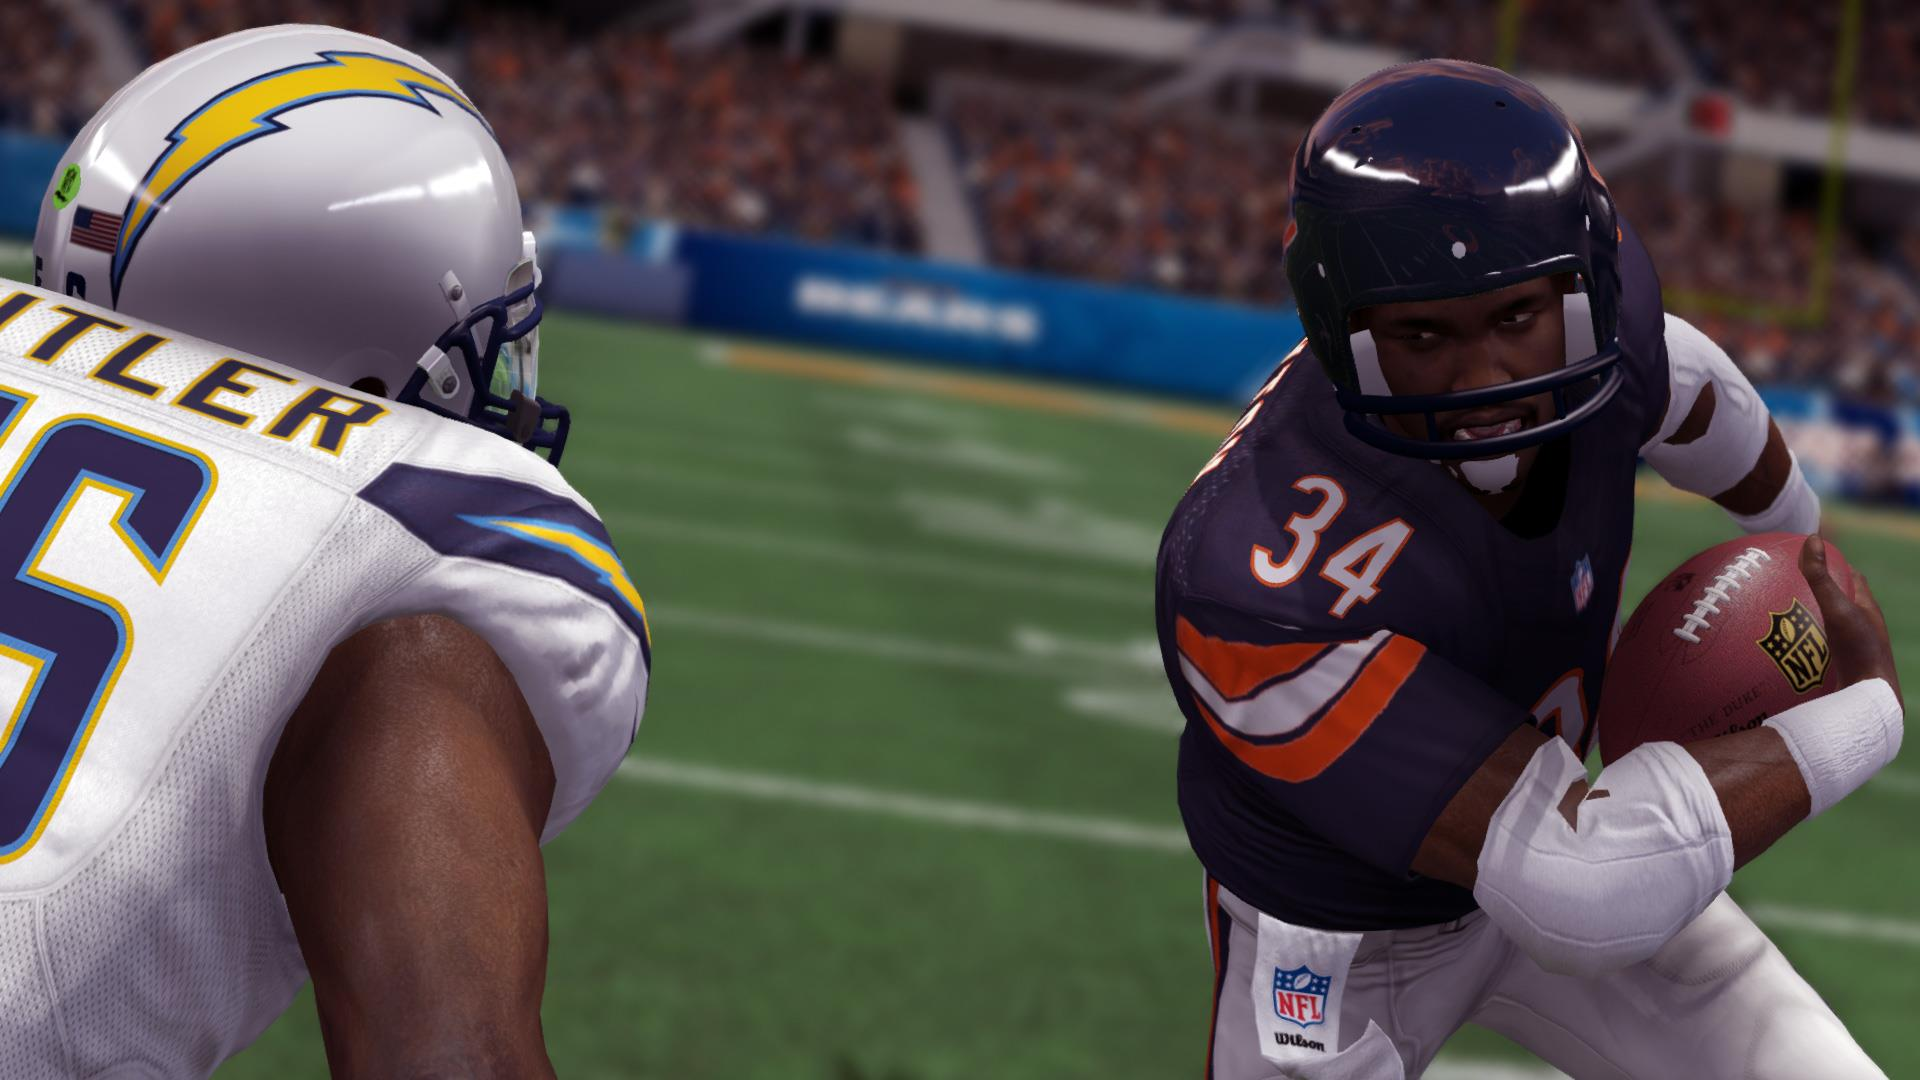 Walter Payton Legacy Award in Madden NFL 25 (Xbox One)